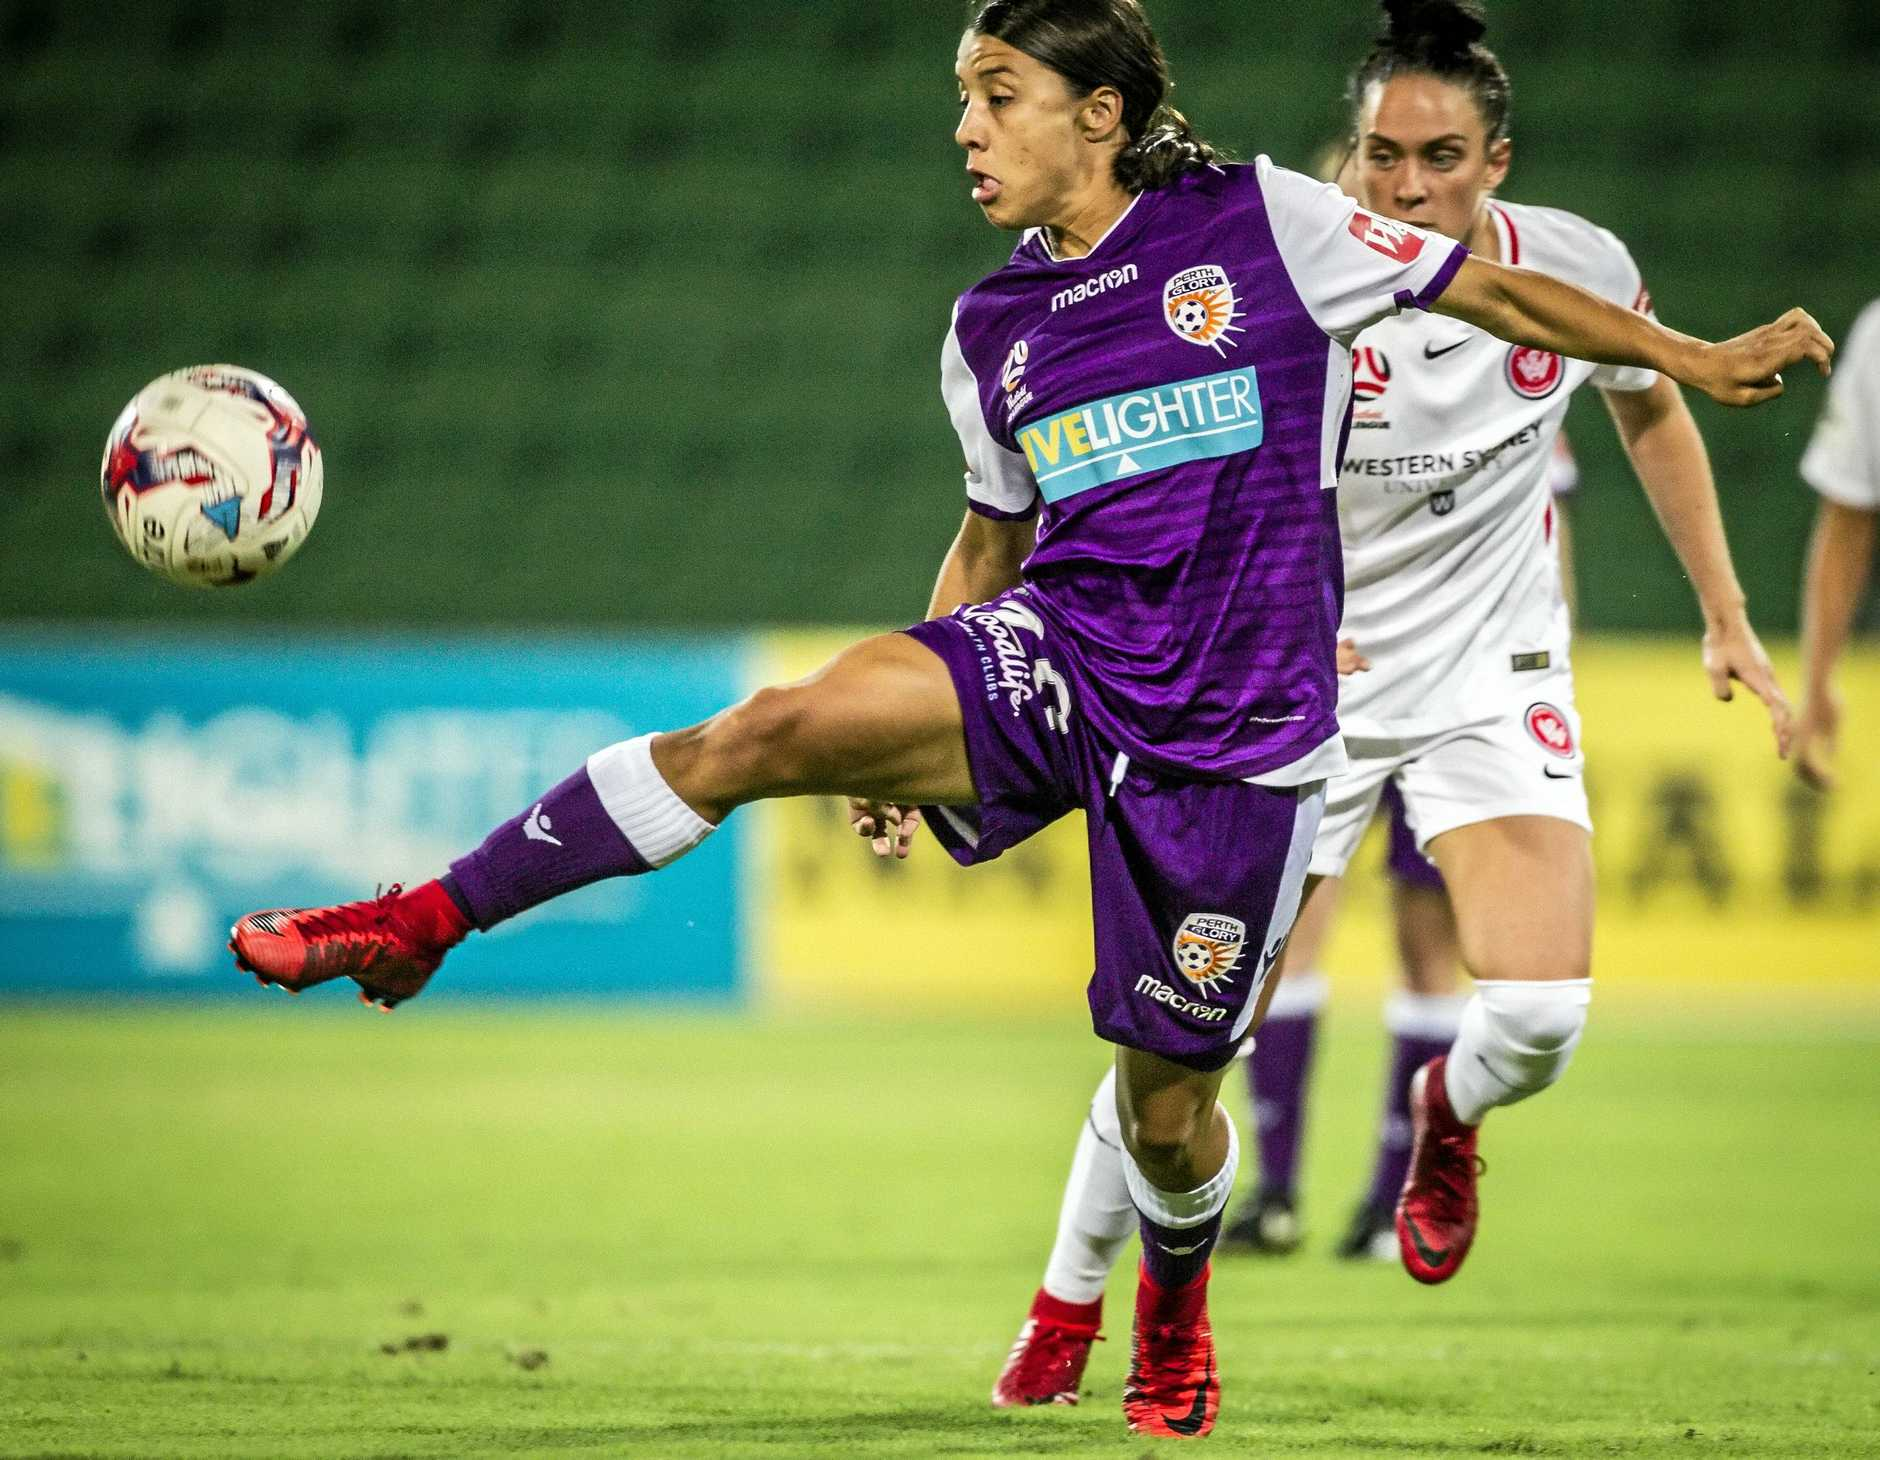 Plenty will be expected of Perth Glory's Samantha Kerr at the upcoming Asian Cup in Jordan.